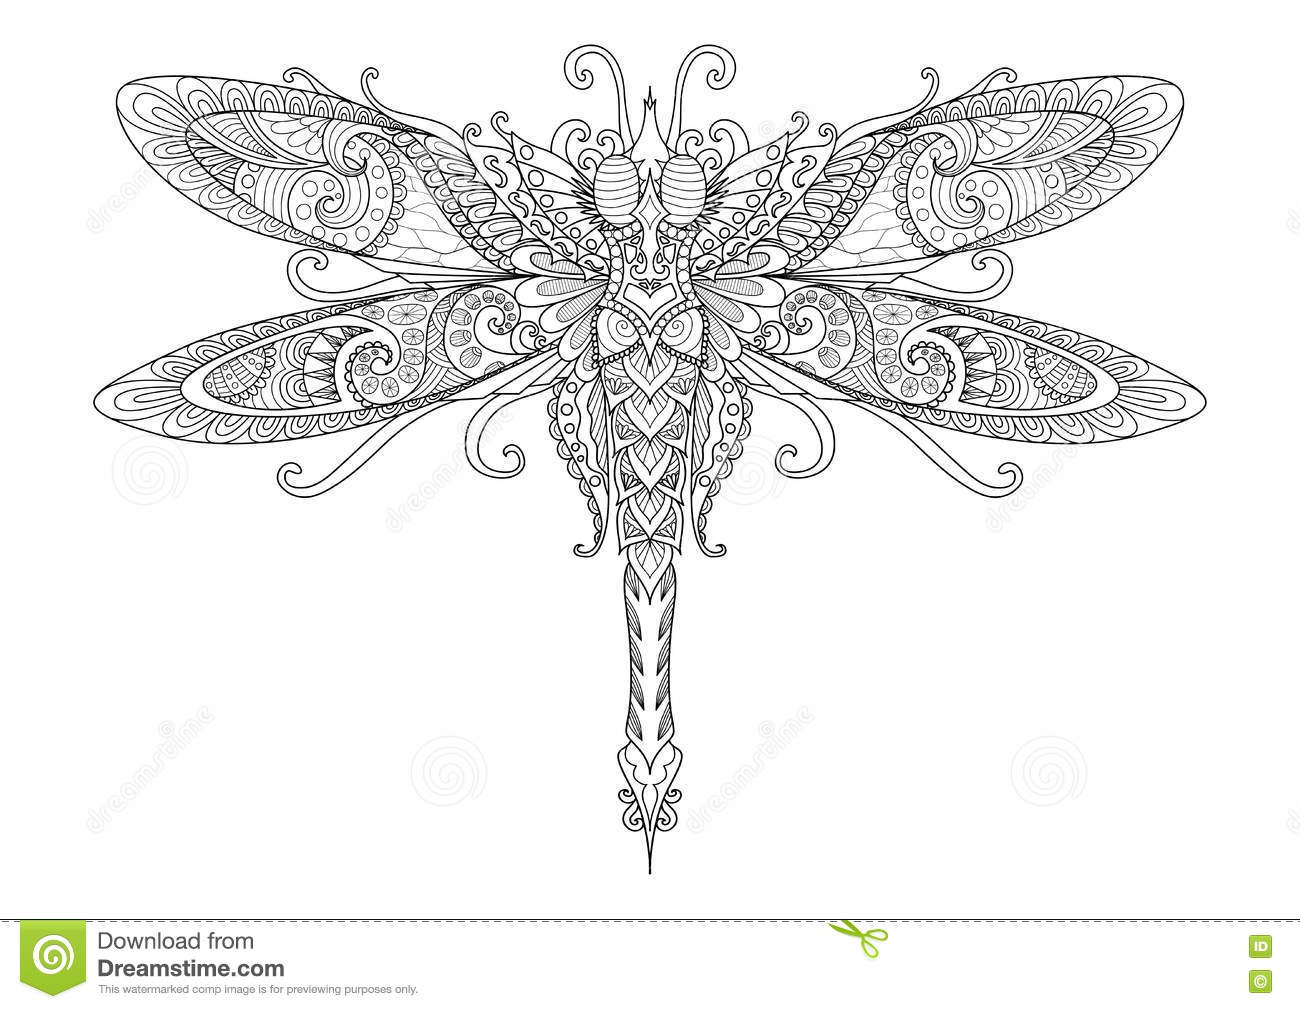 doodles design of dragonfly for tattoo design element t shirt